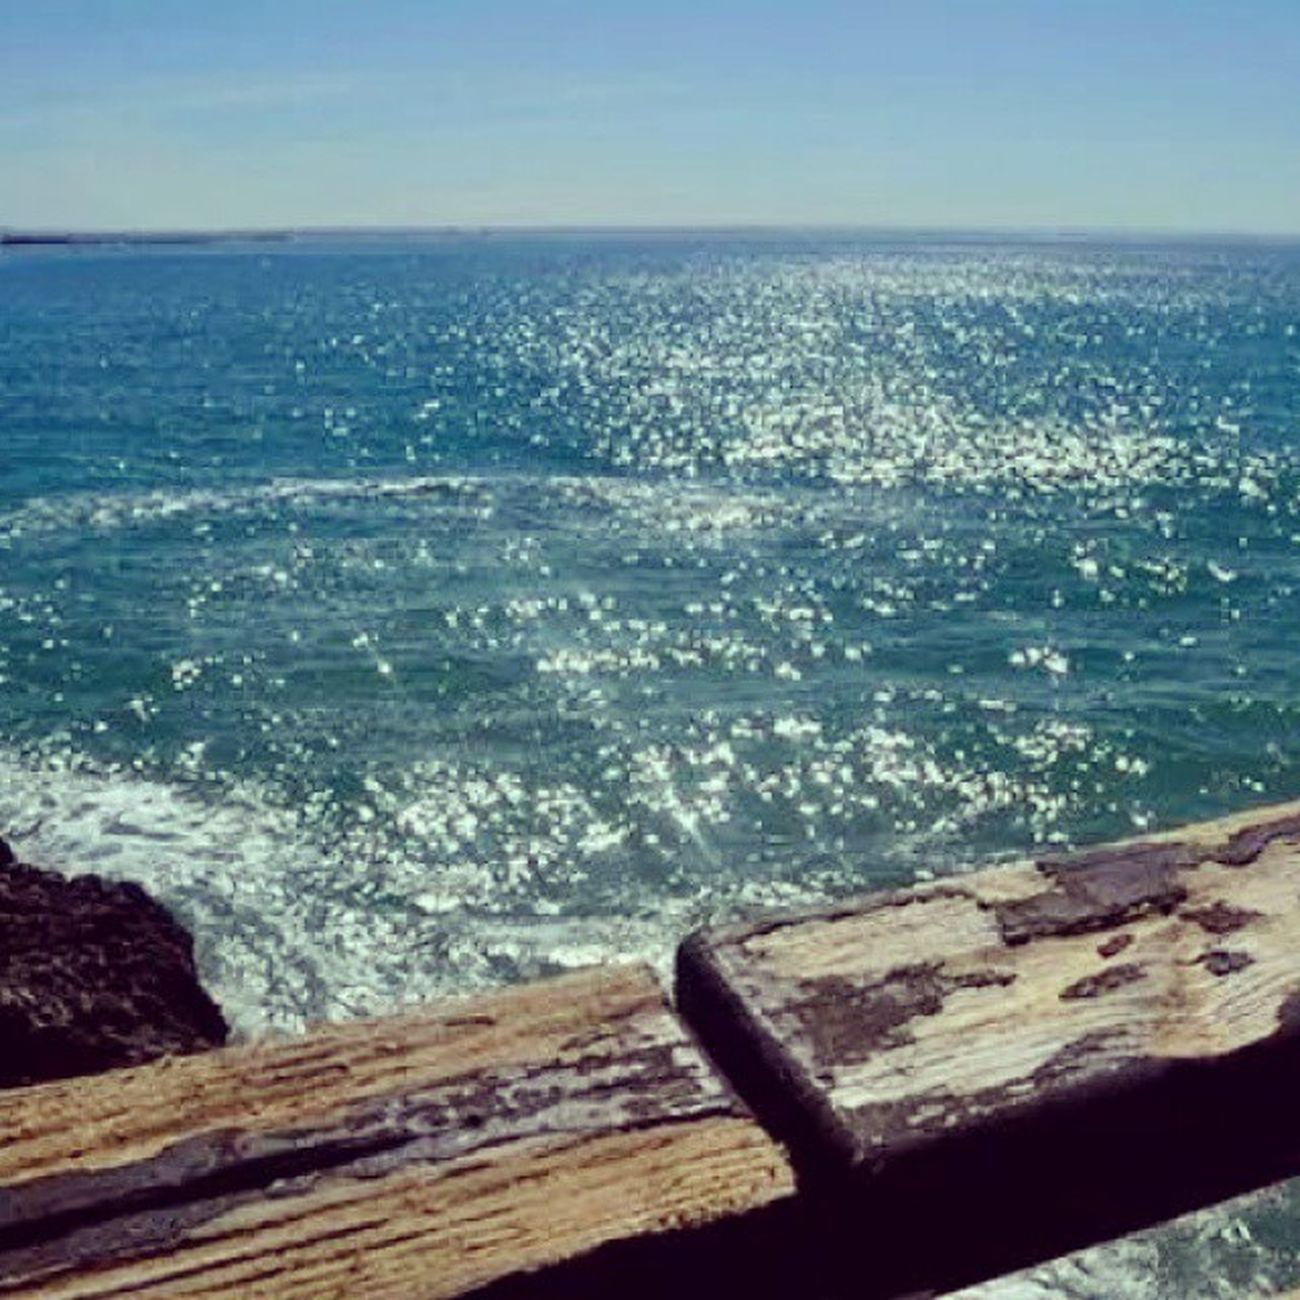 Missing Port Elizabeth. ♥ Portelizabeth Southafrica Happytimes Beach Ocean Sea Clouds Memorablemoments April 2014 Thingsilove Thingsimiss ♥♥♥ Bridge Rocks Clearsky Waves